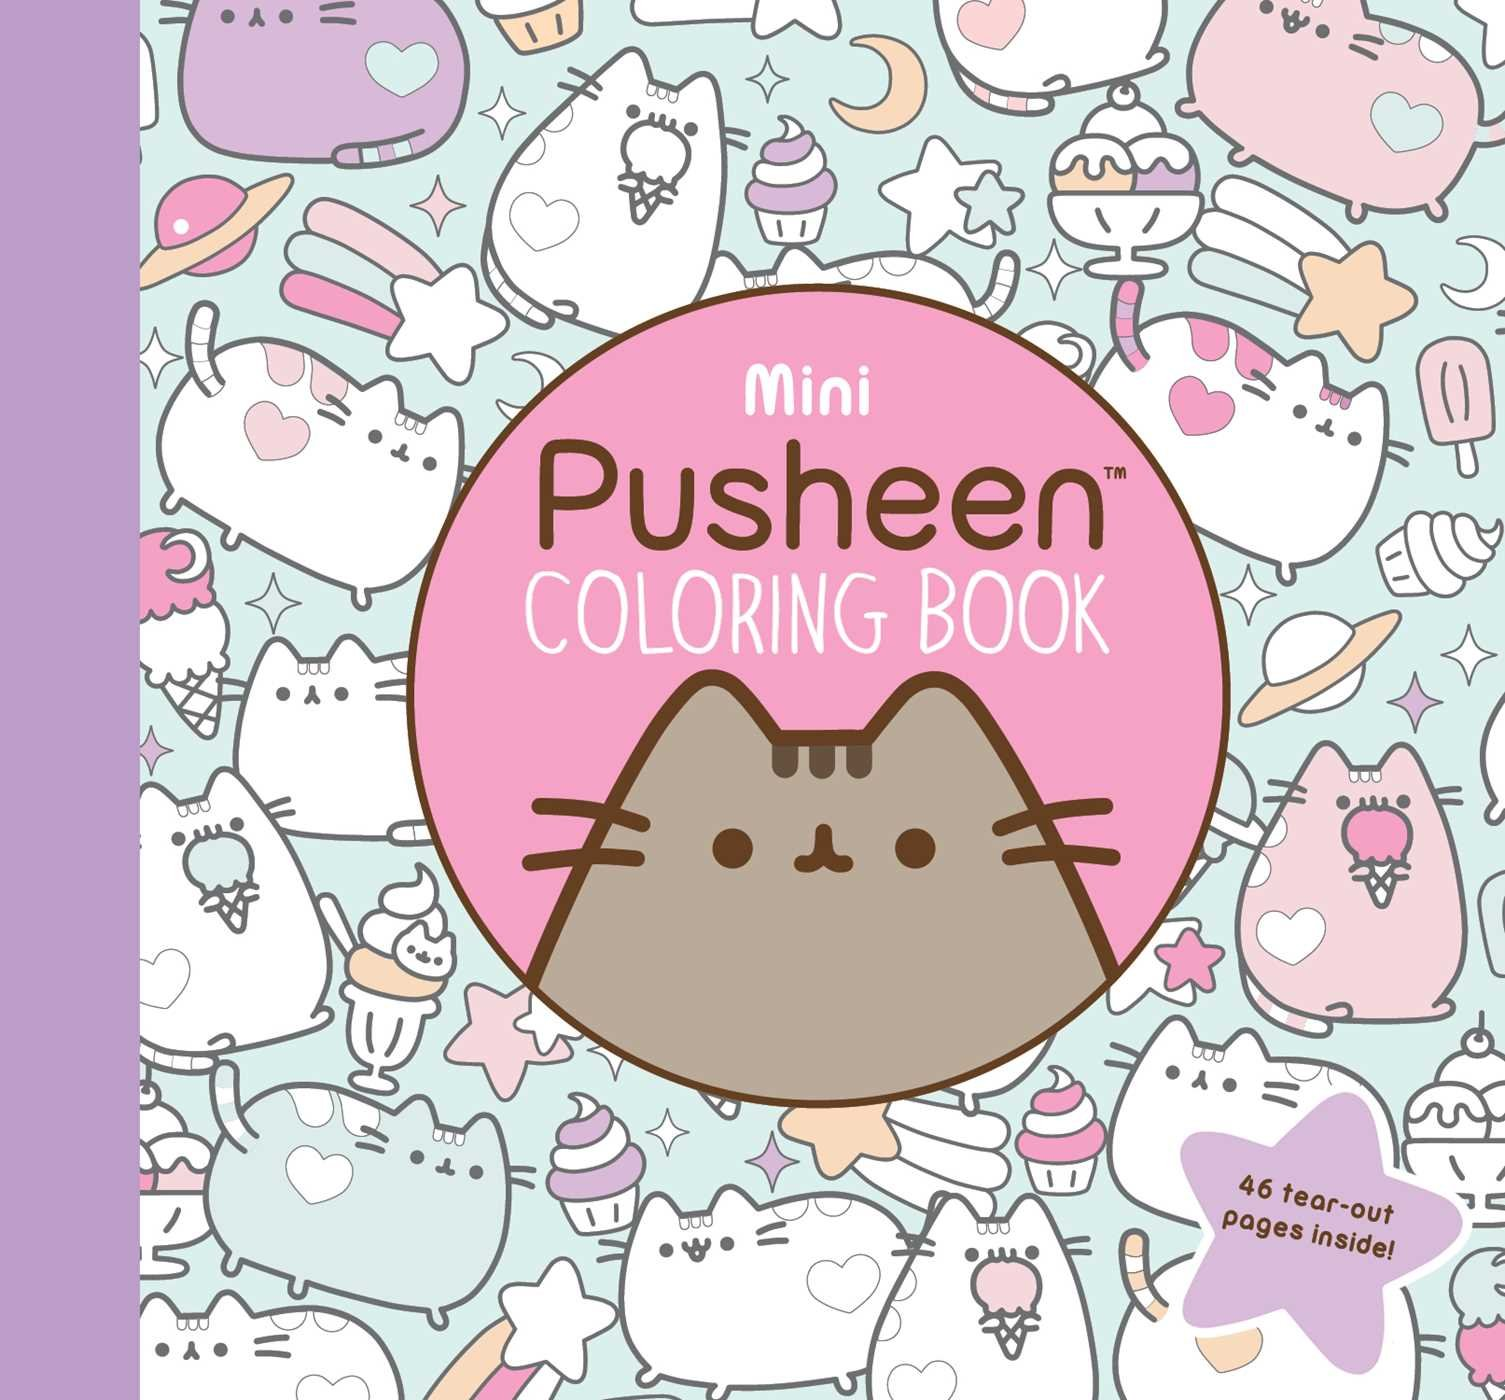 Amazon.com: Mini Pusheen Coloring Book (A Pusheen Book ...